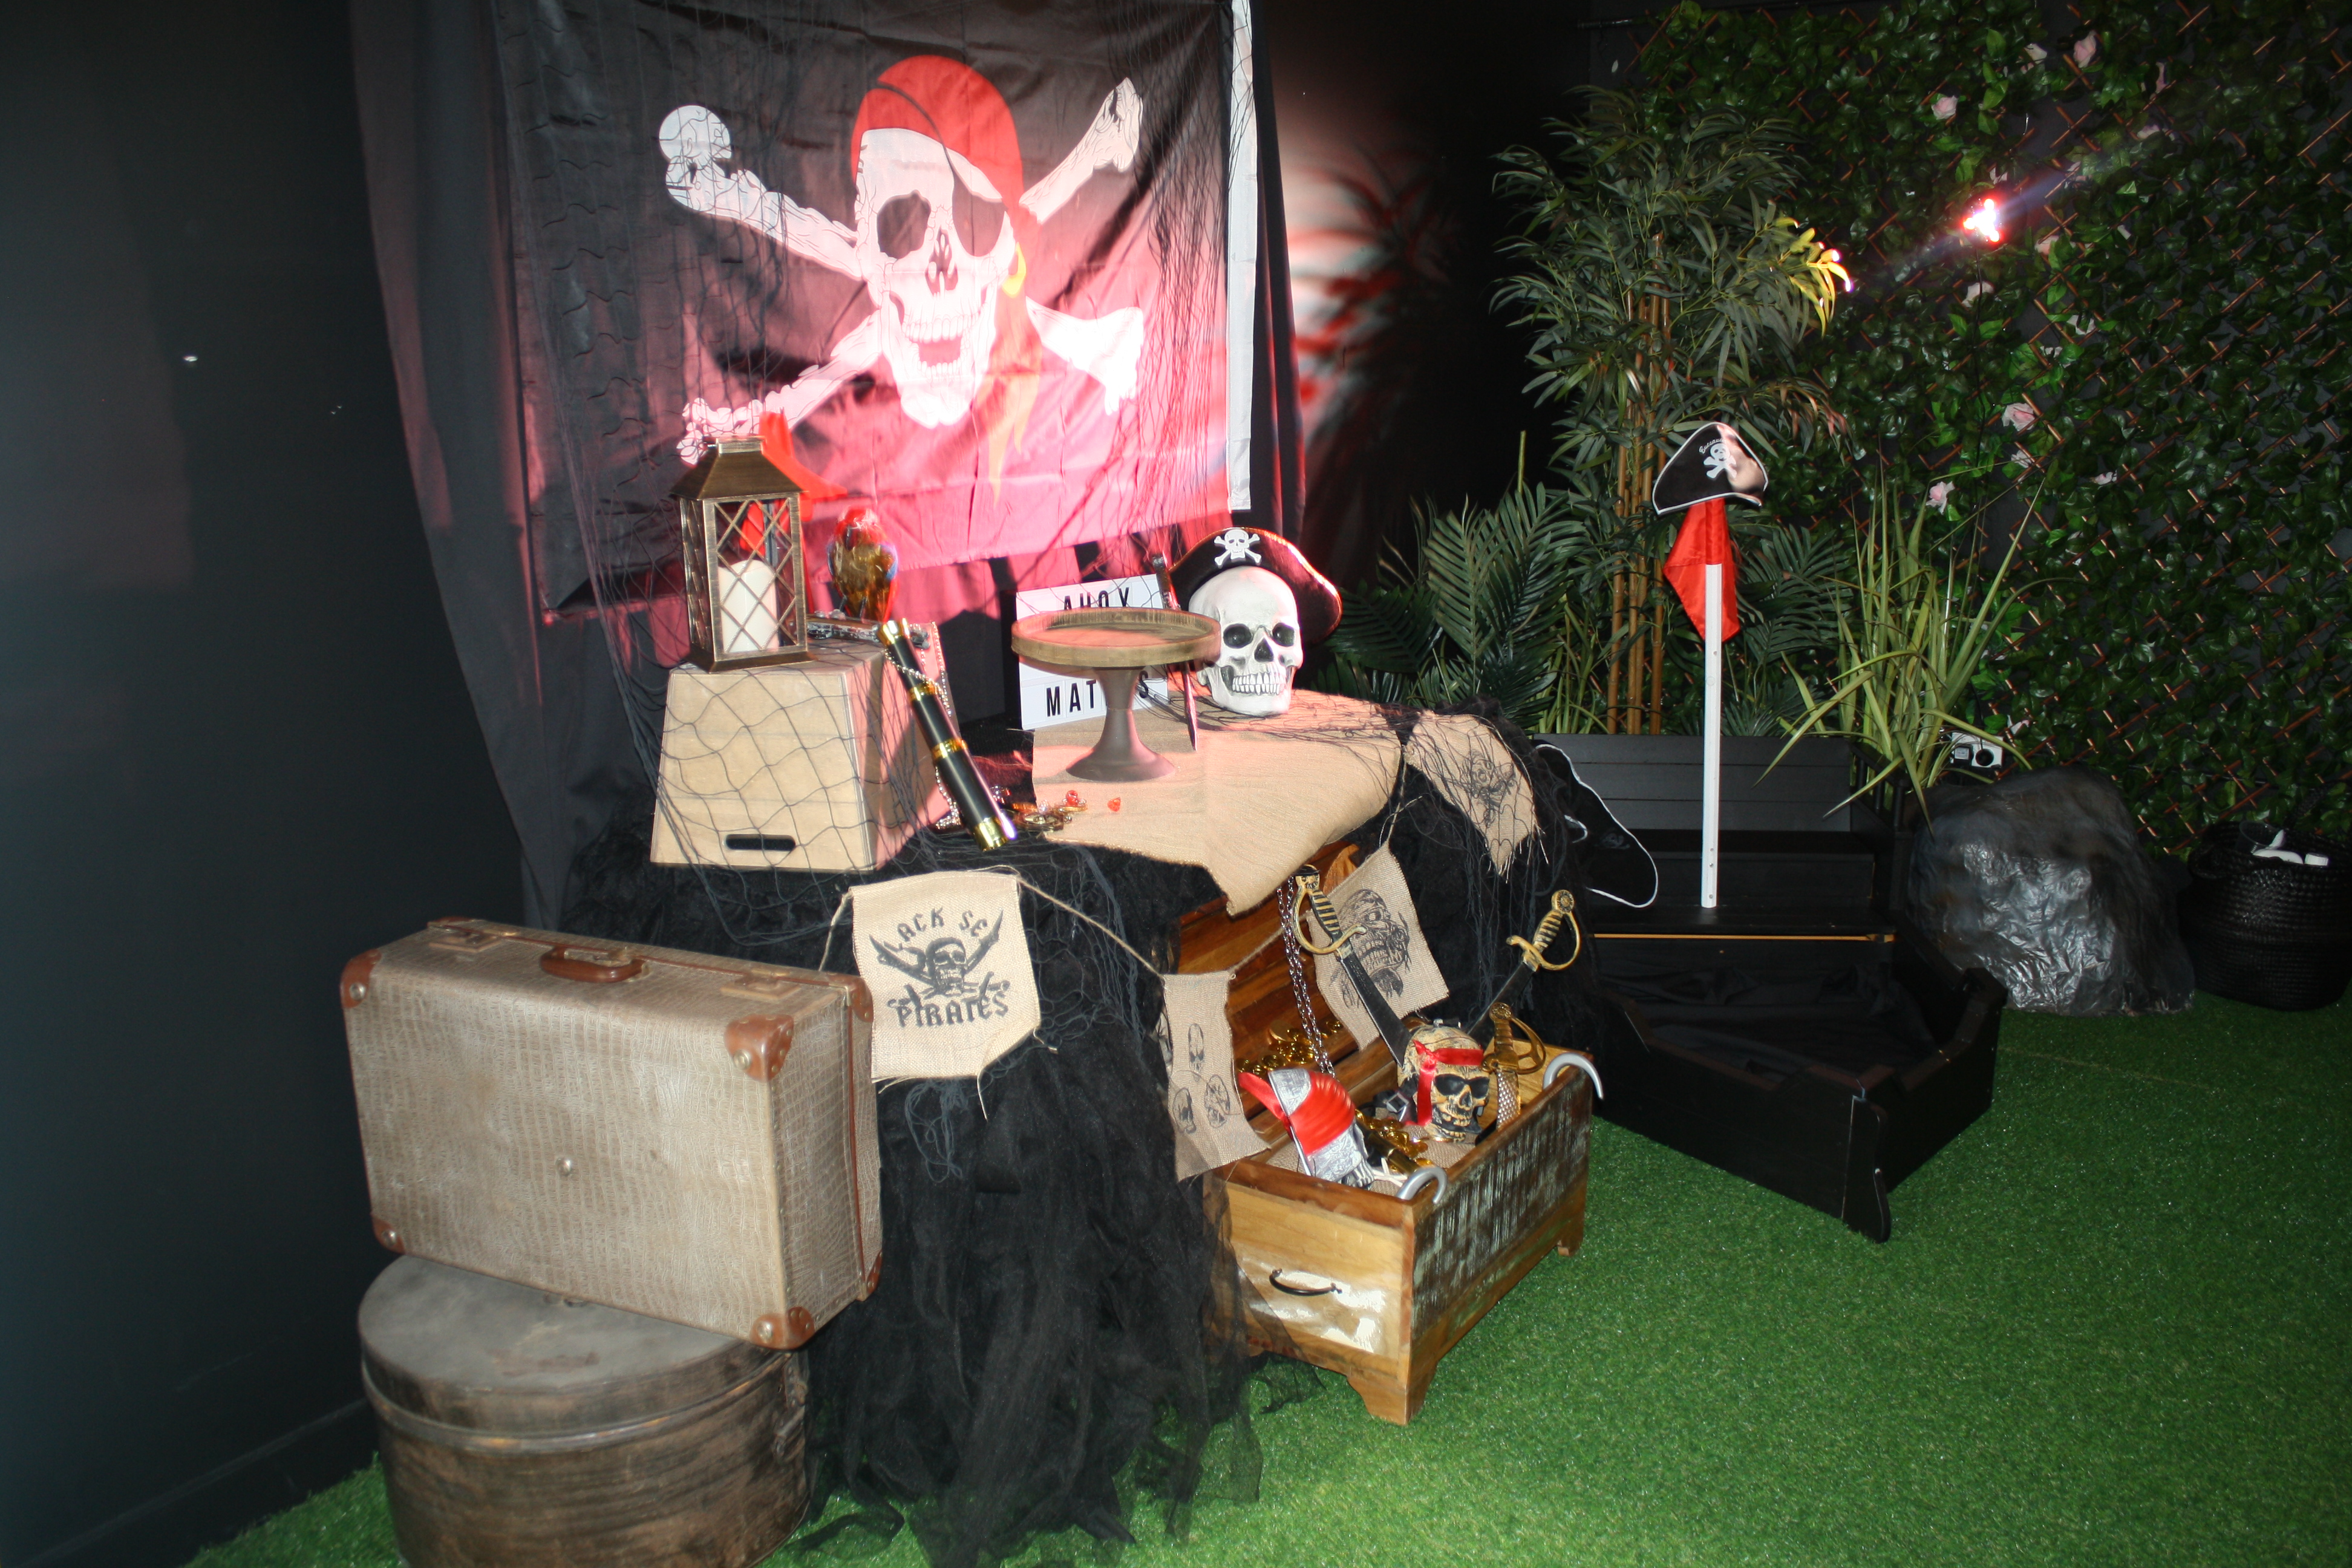 Pirate Theme in the Enchanted Garden